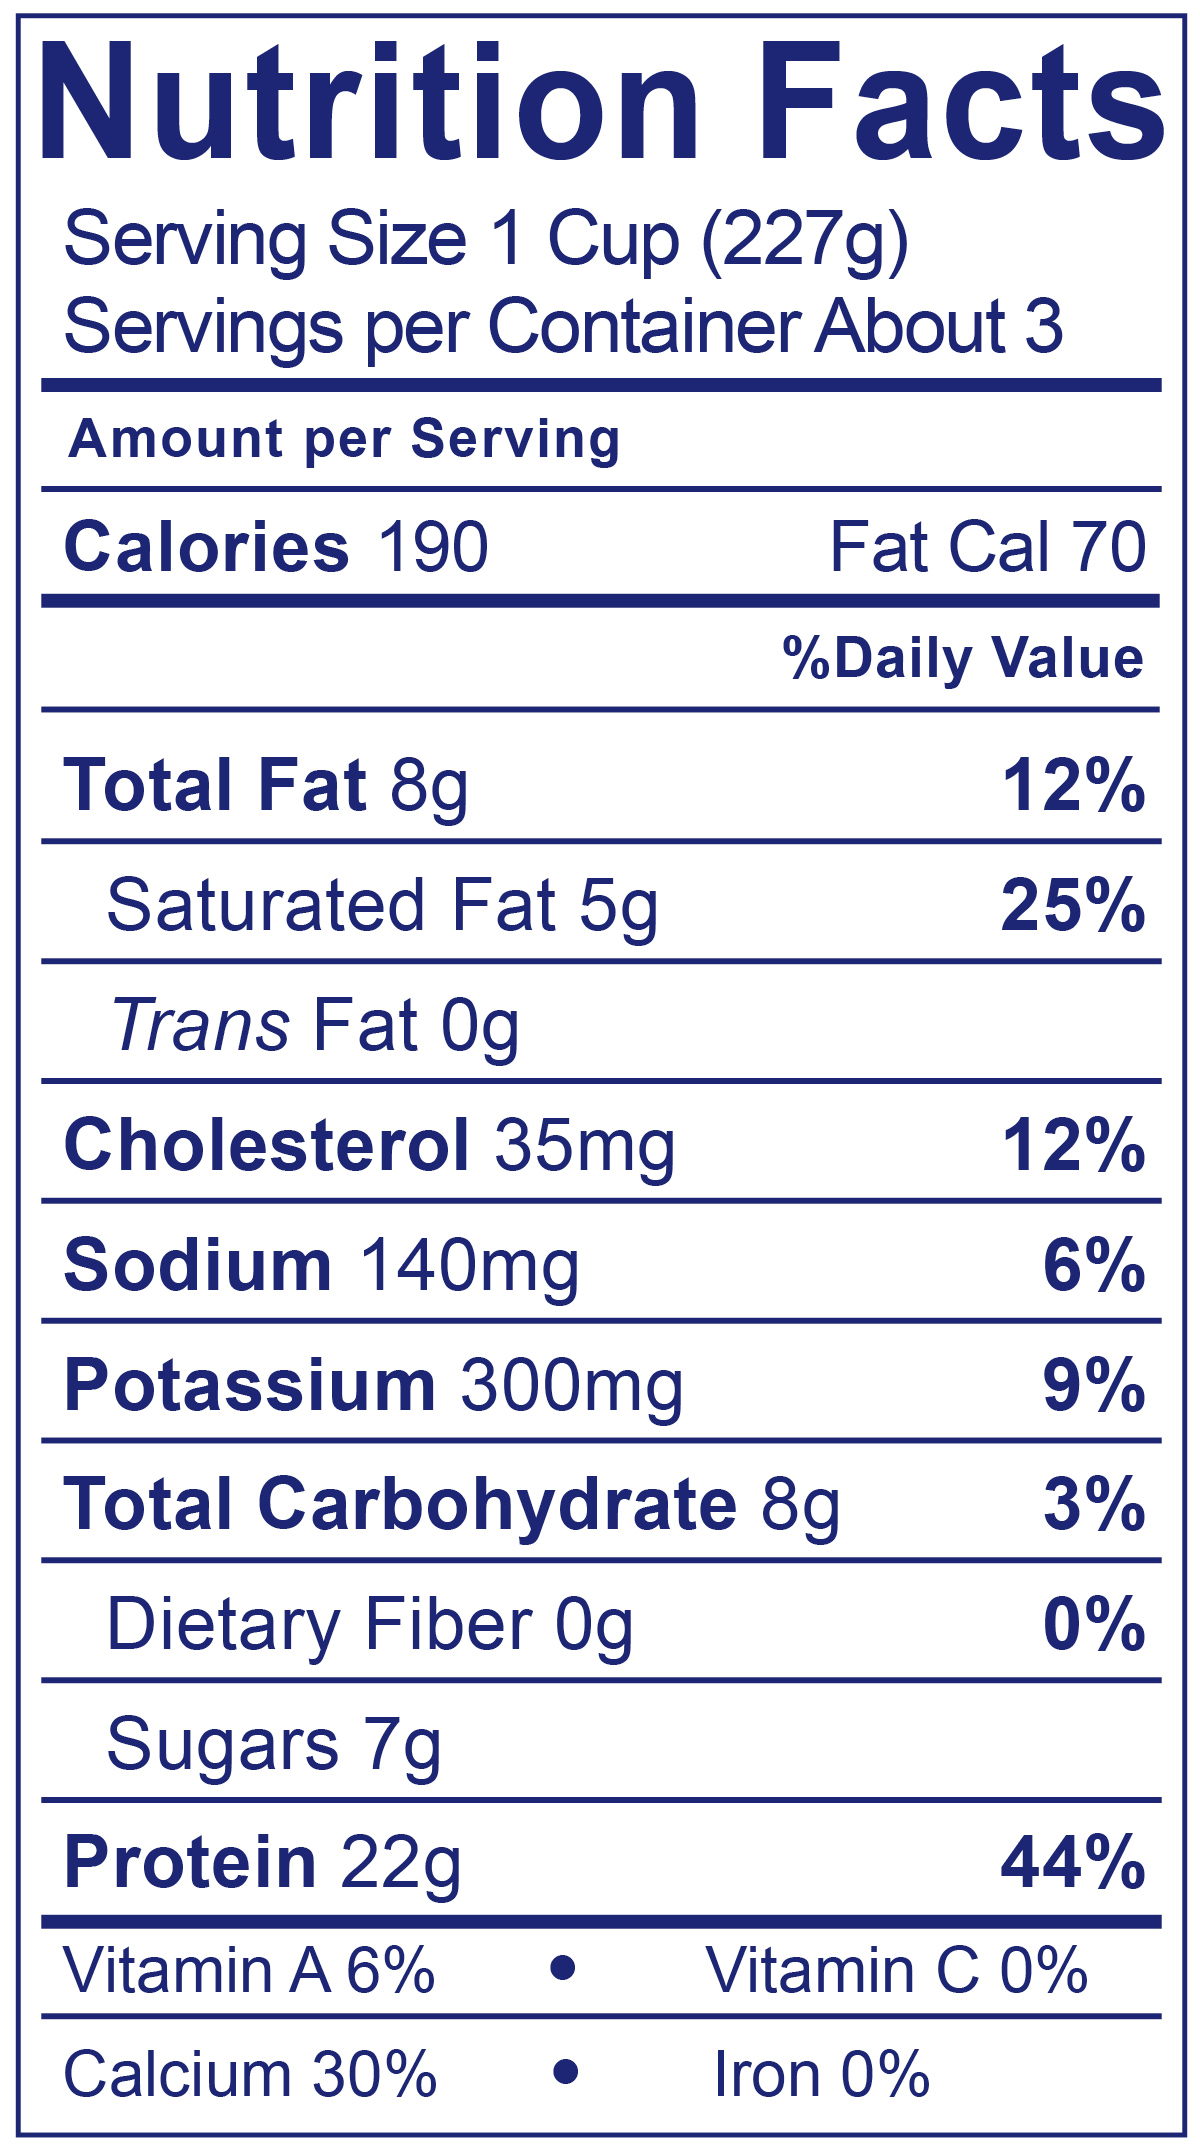 100% Grassfed Greek Plain - Nutrition Facts